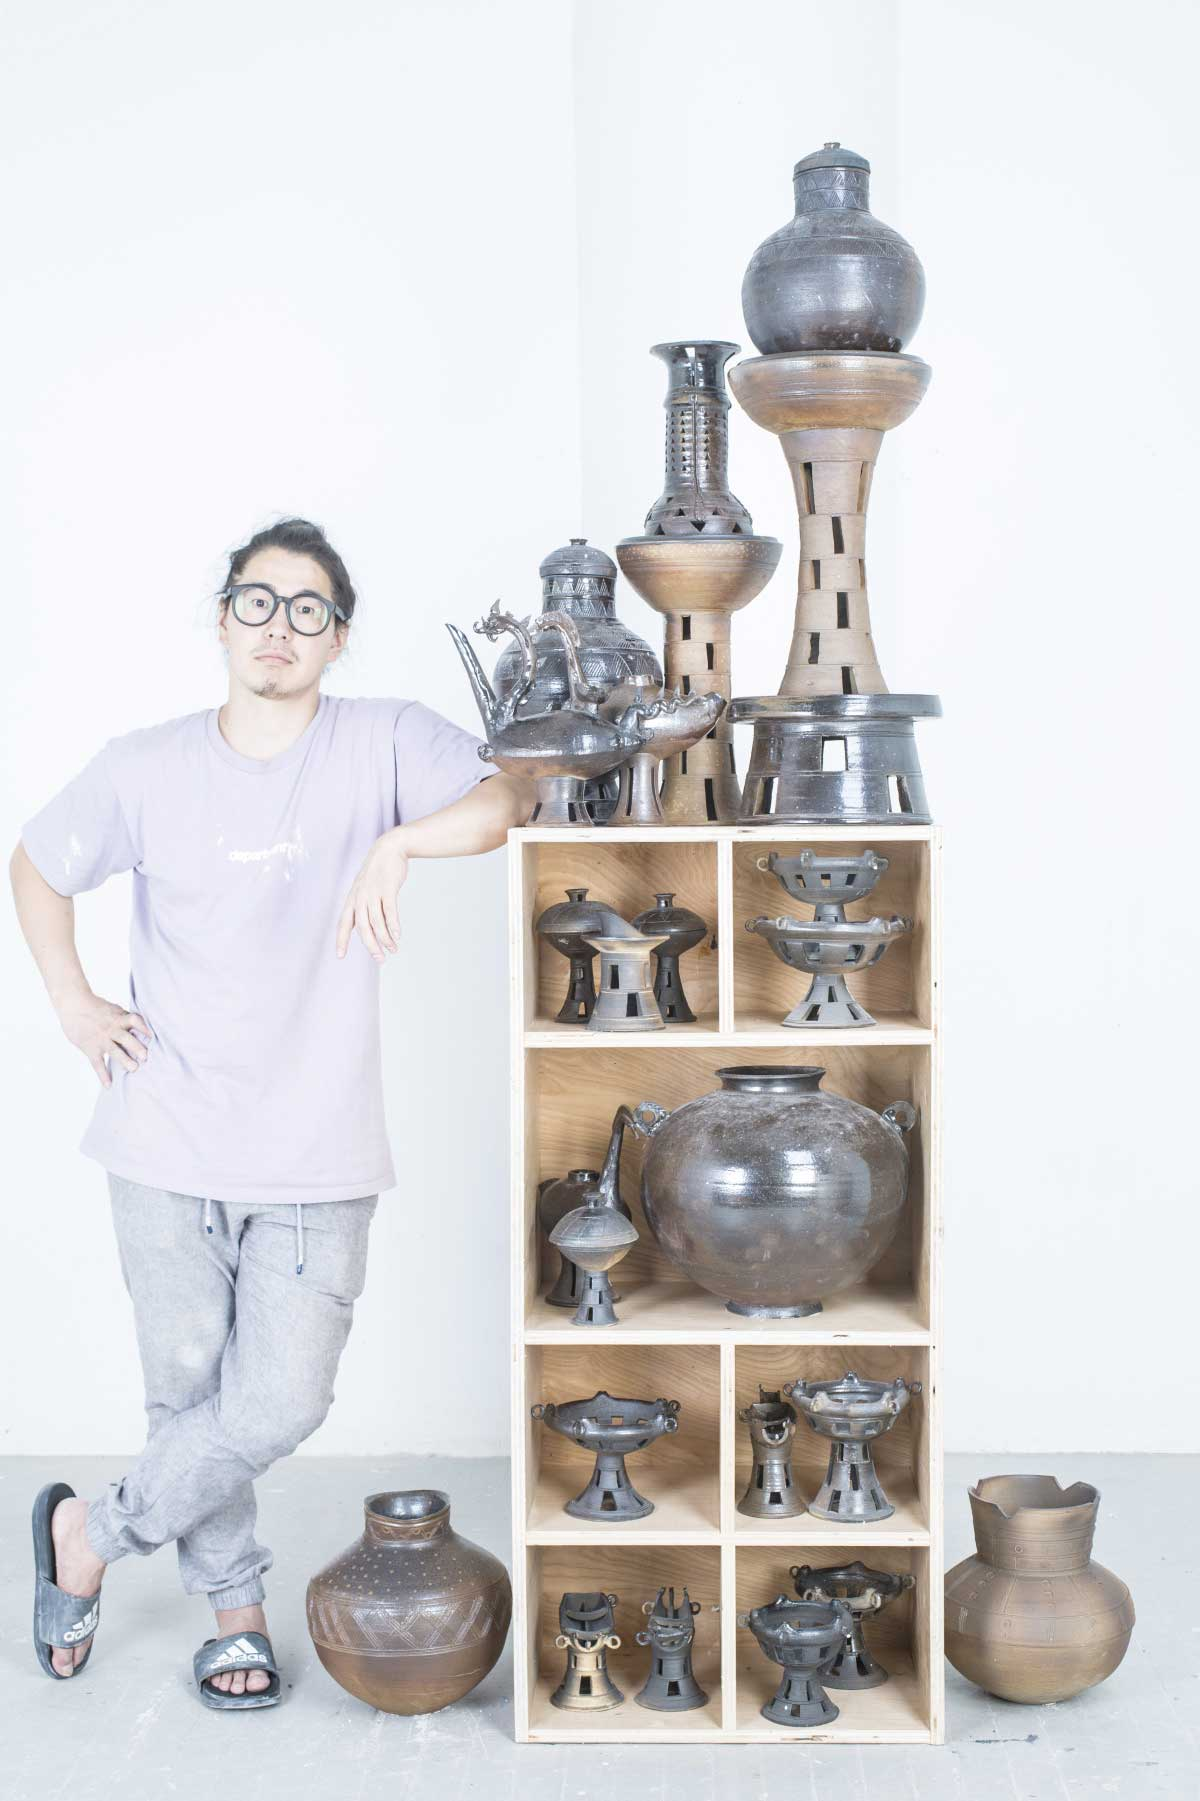 Dave Kim The Potter Moon Jar Workshop, Westchester New York, Yonkers Pottery Studio - Ceramics